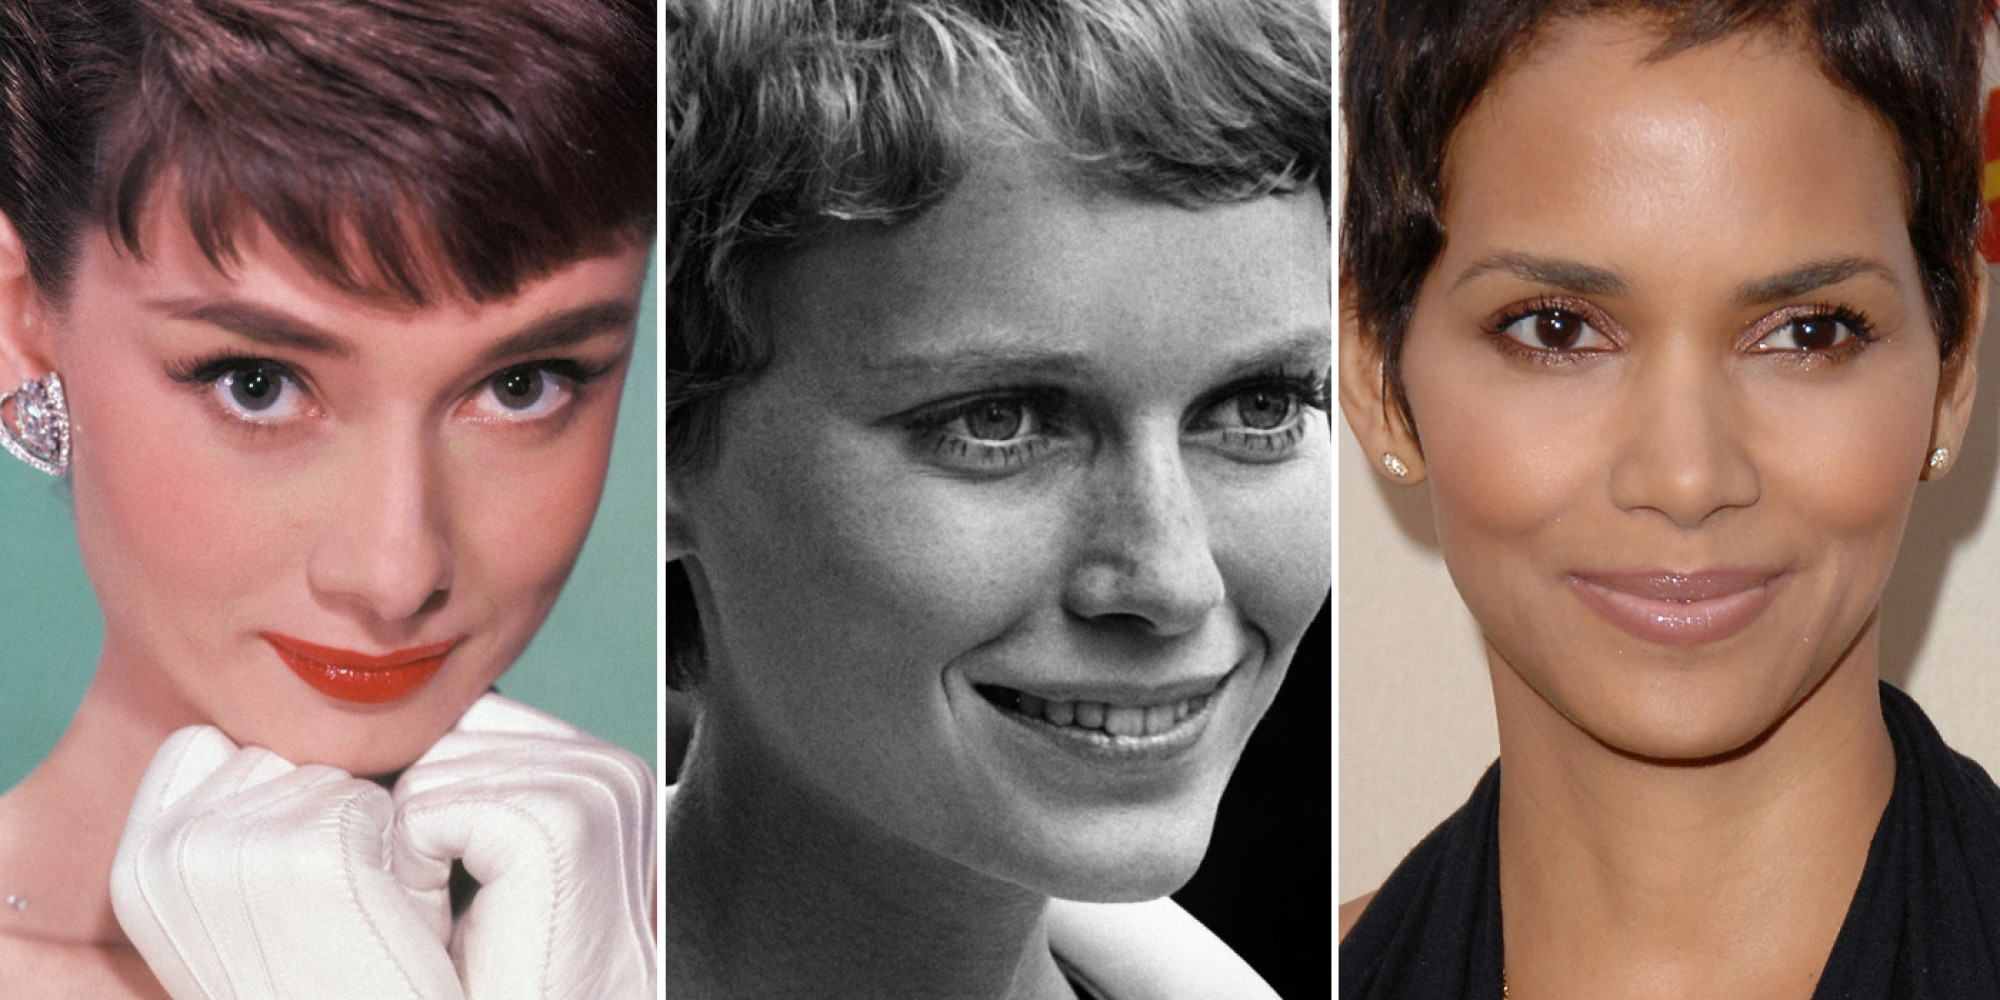 15 Pixie Haircuts That Make Us Want To Chop Off Our Hair